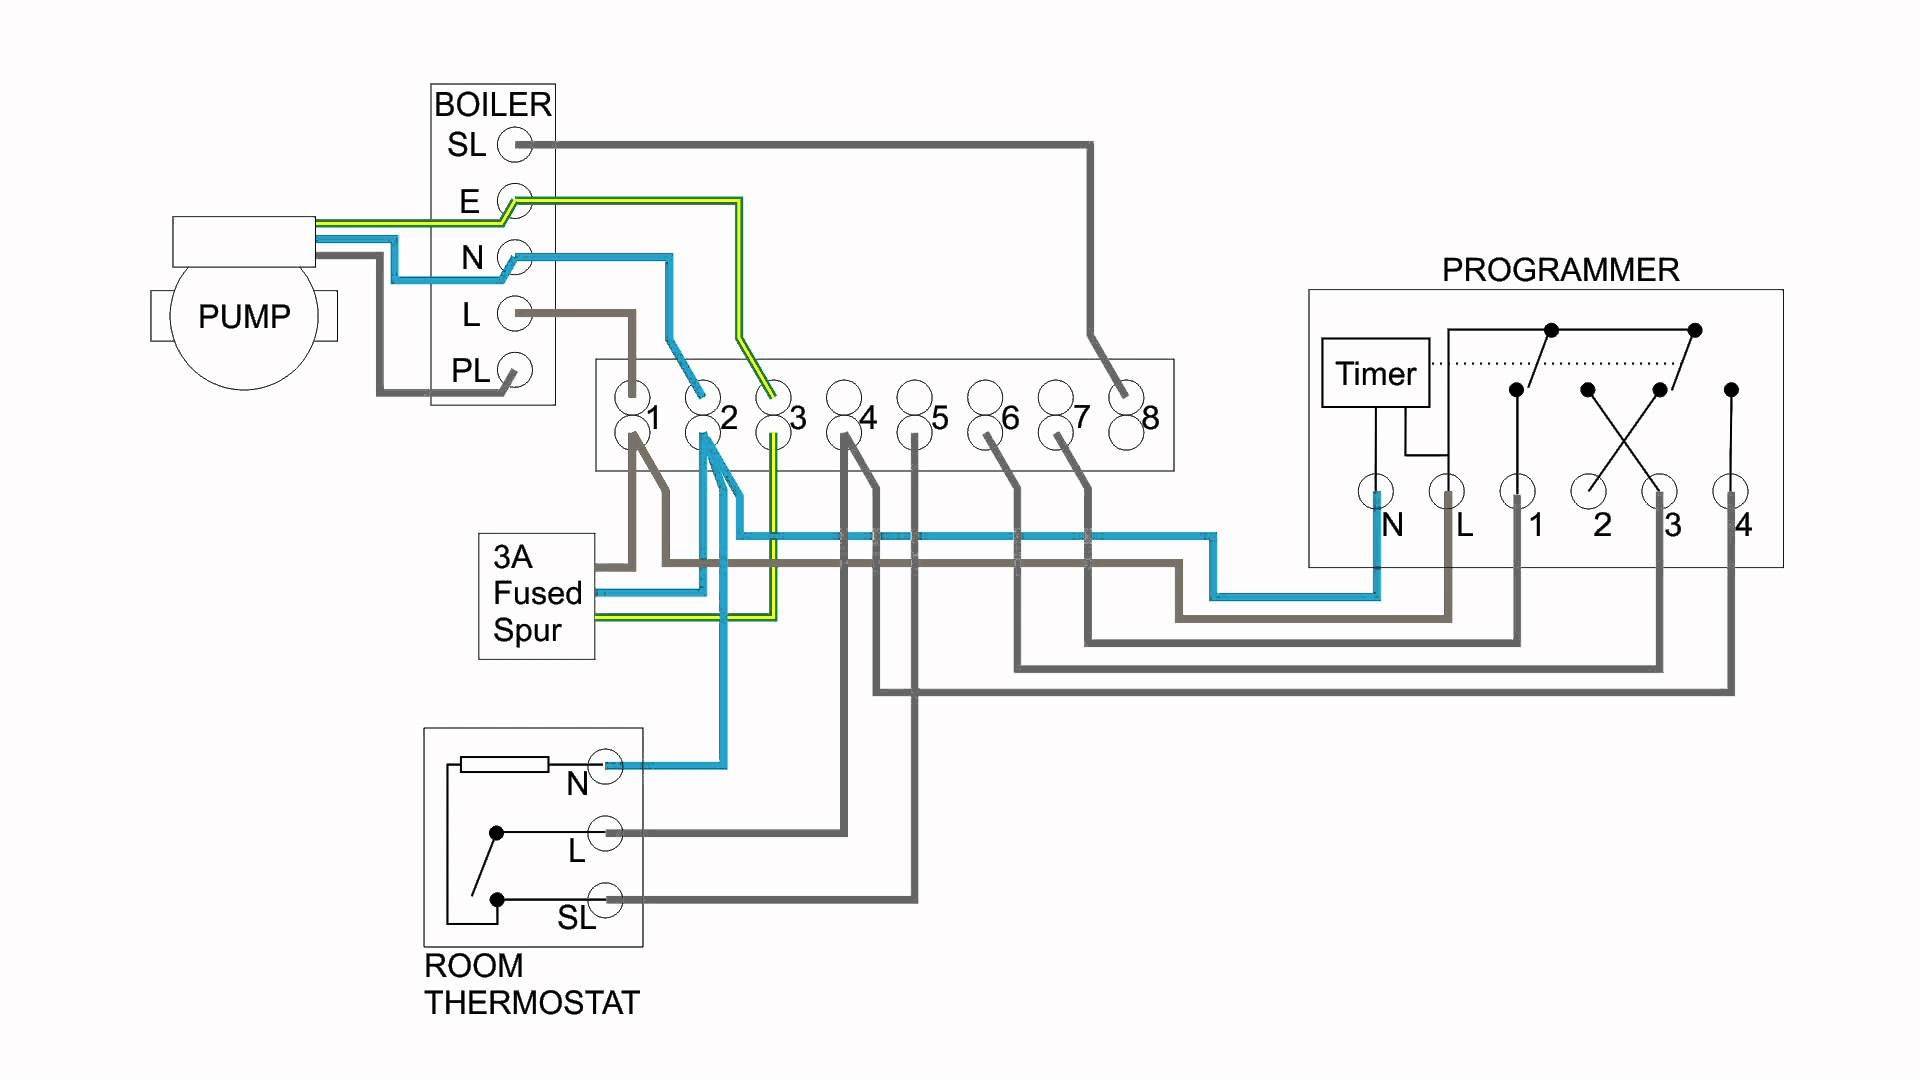 Wiring Diagram Images Detail: Name: underfloor heating thermostat wiring  diagram – Hive Thermostat Wiring Diagram New Central Heating Electrical ...